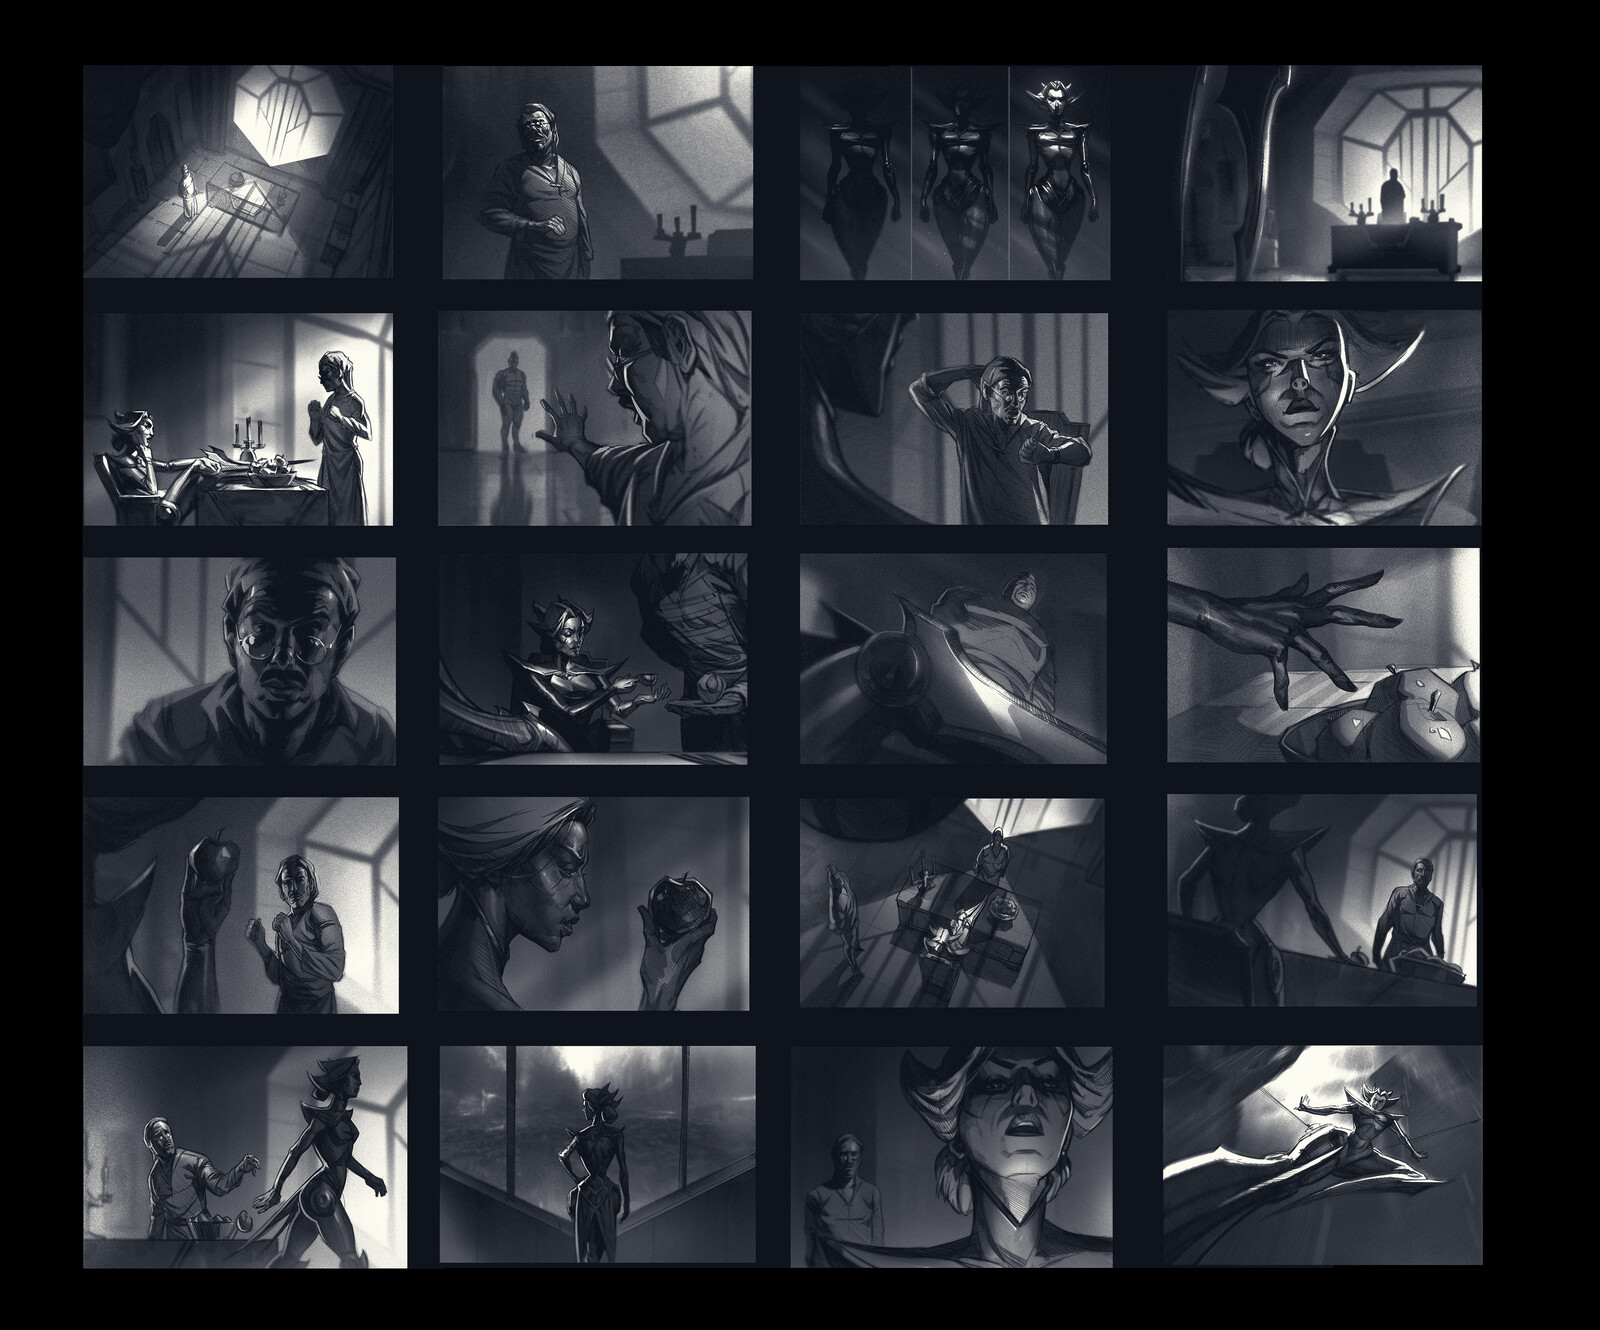 League storyboards